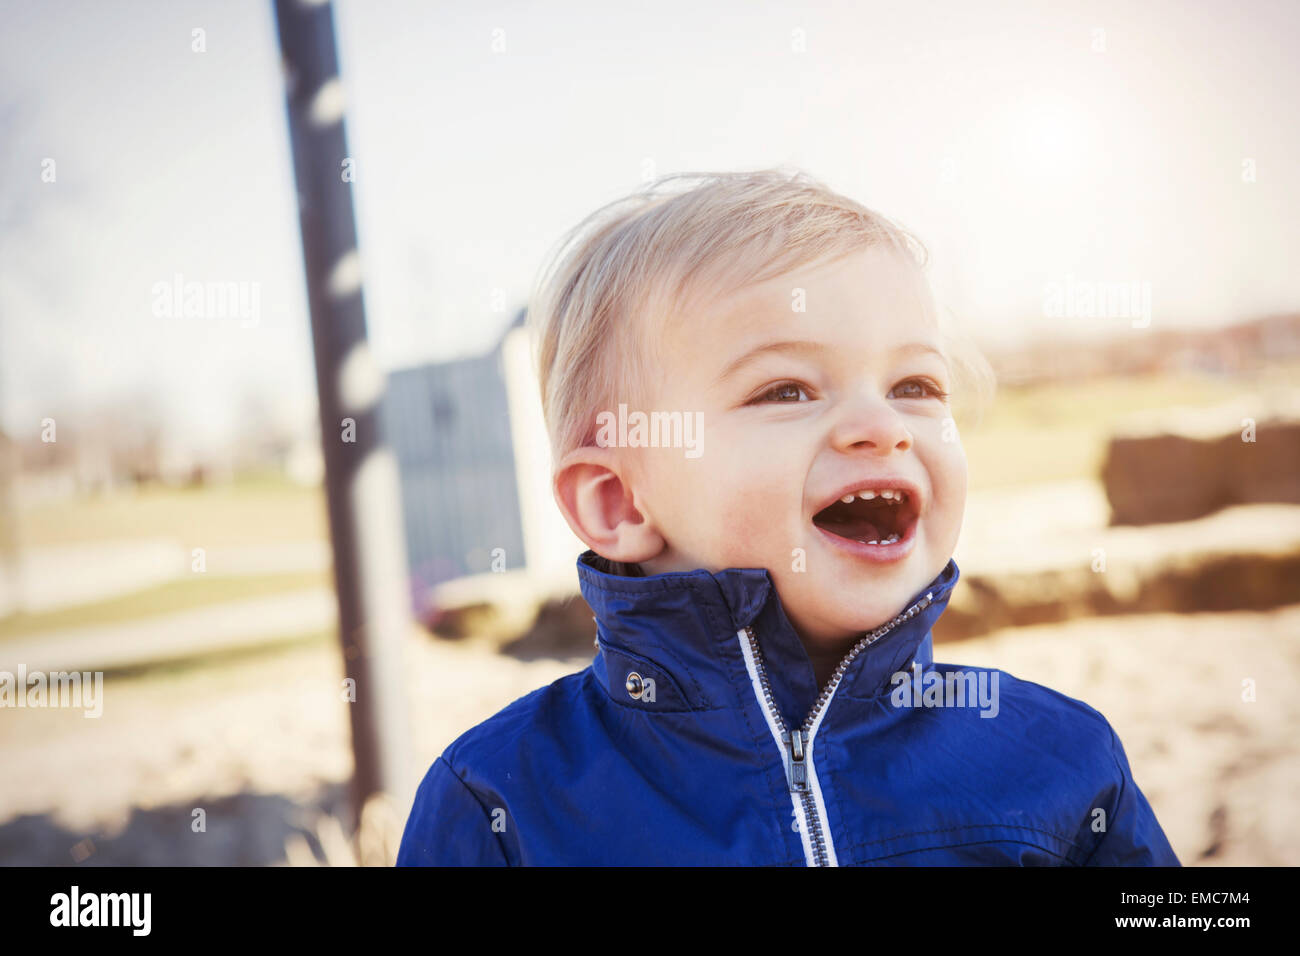 Germany, Oberhausen, toddler with open mouth on playground - Stock Image